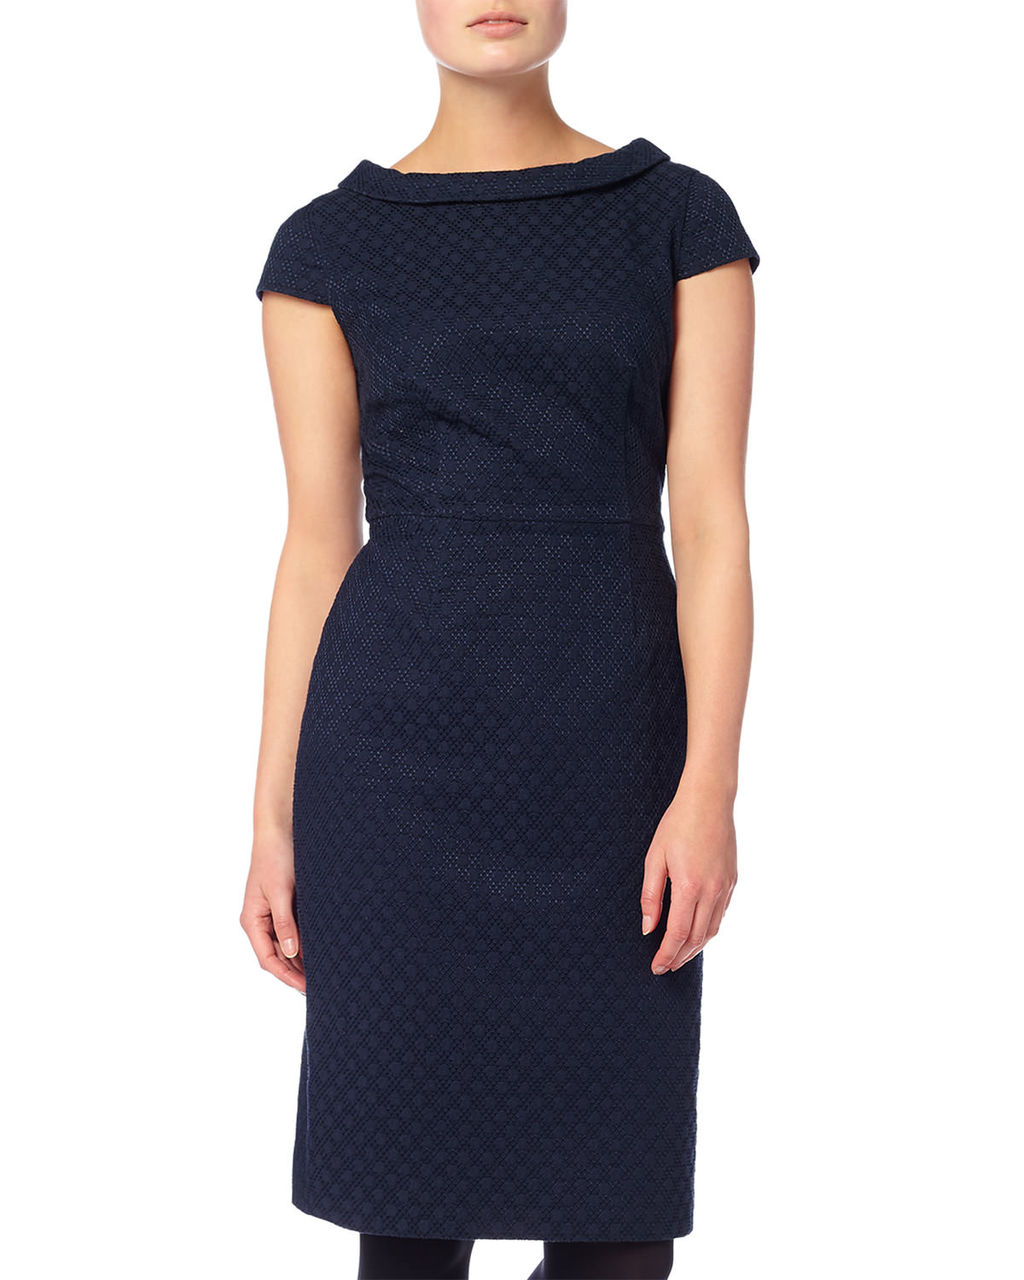 Monroe Textured Dress - style: shift; fit: tailored/fitted; pattern: plain; predominant colour: navy; occasions: evening; length: on the knee; neckline: collarstand; fibres: cotton - stretch; sleeve length: short sleeve; sleeve style: standard; pattern type: fabric; texture group: other - light to midweight; season: a/w 2015; wardrobe: event